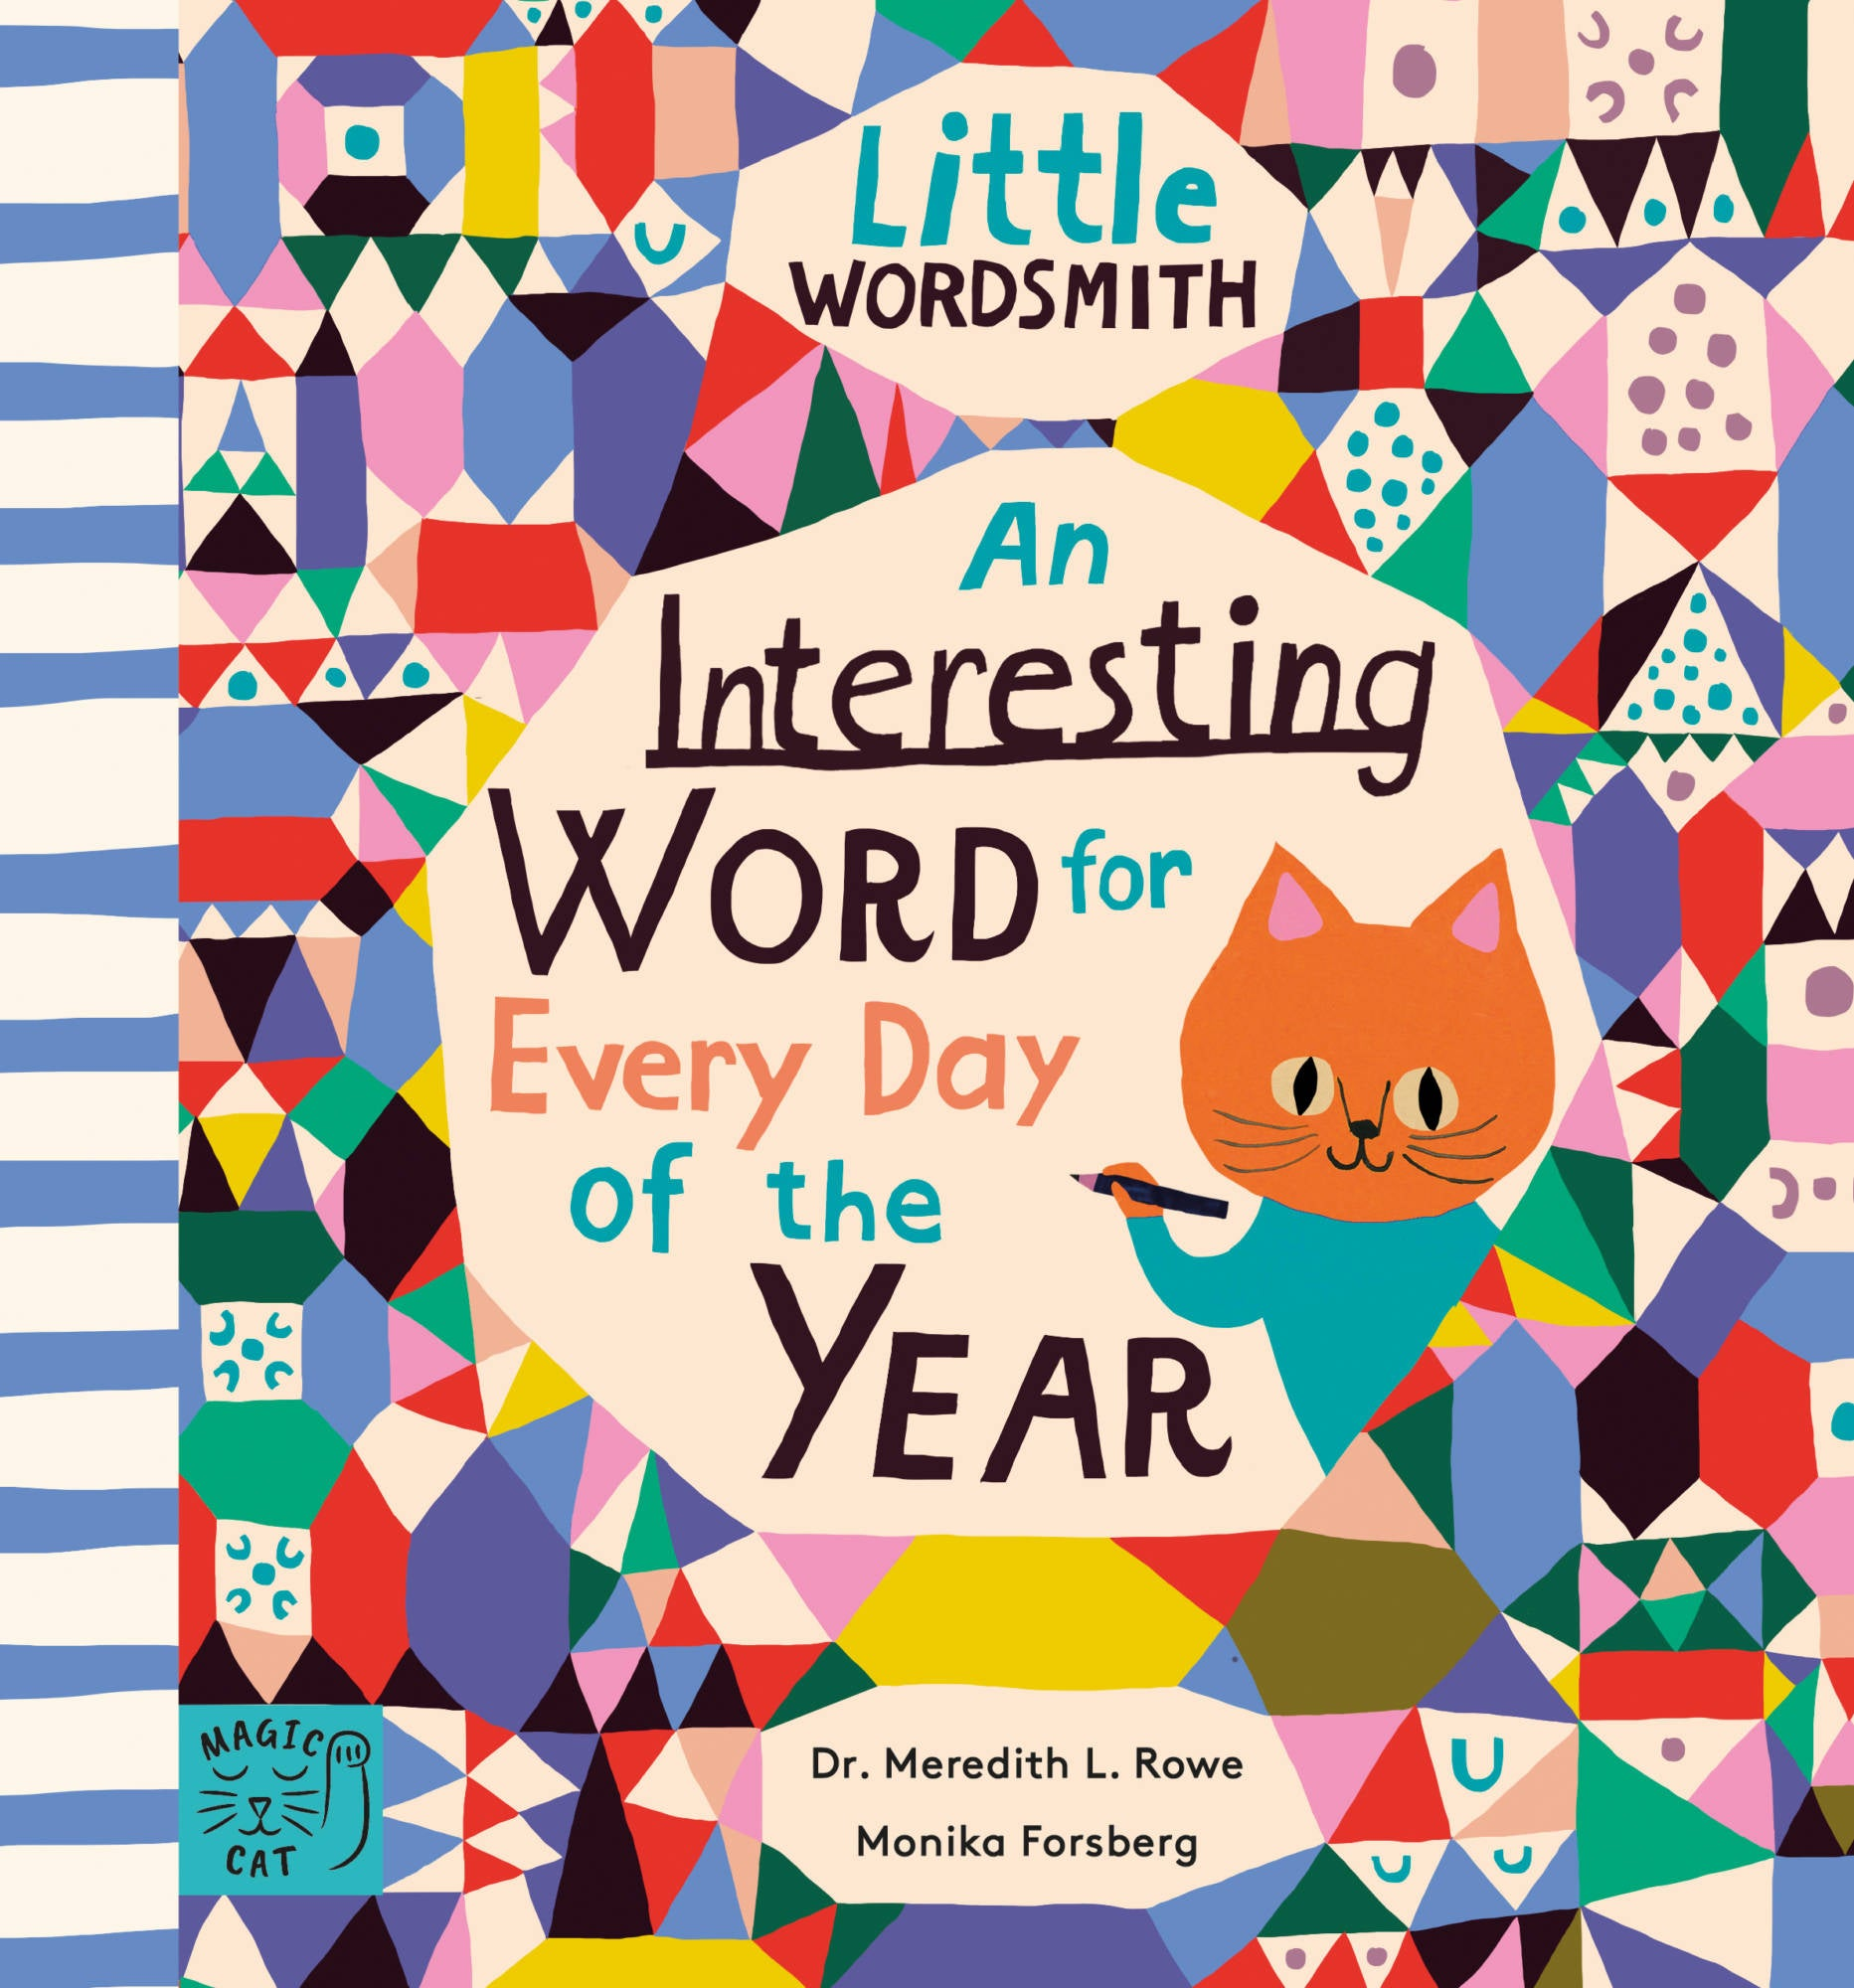 a beautiful childrens book with an interesting word to learn for every day of the year